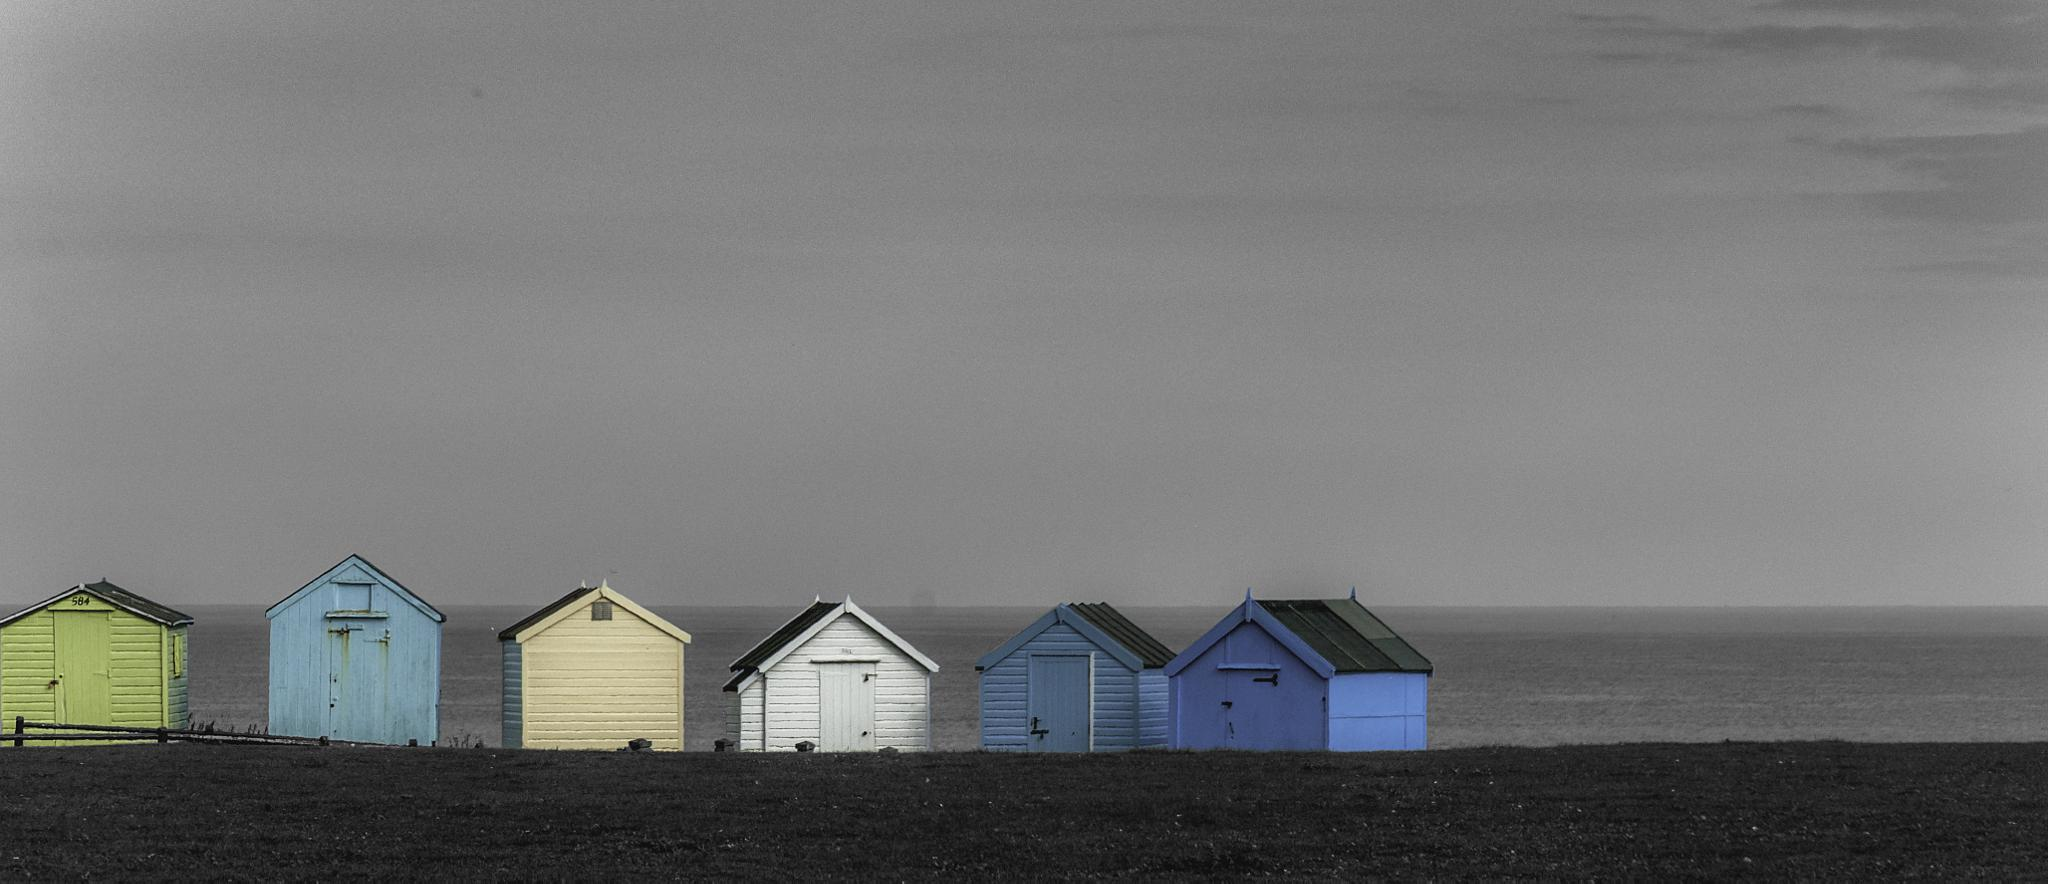 Beach Huts (popped) by HankPhotography